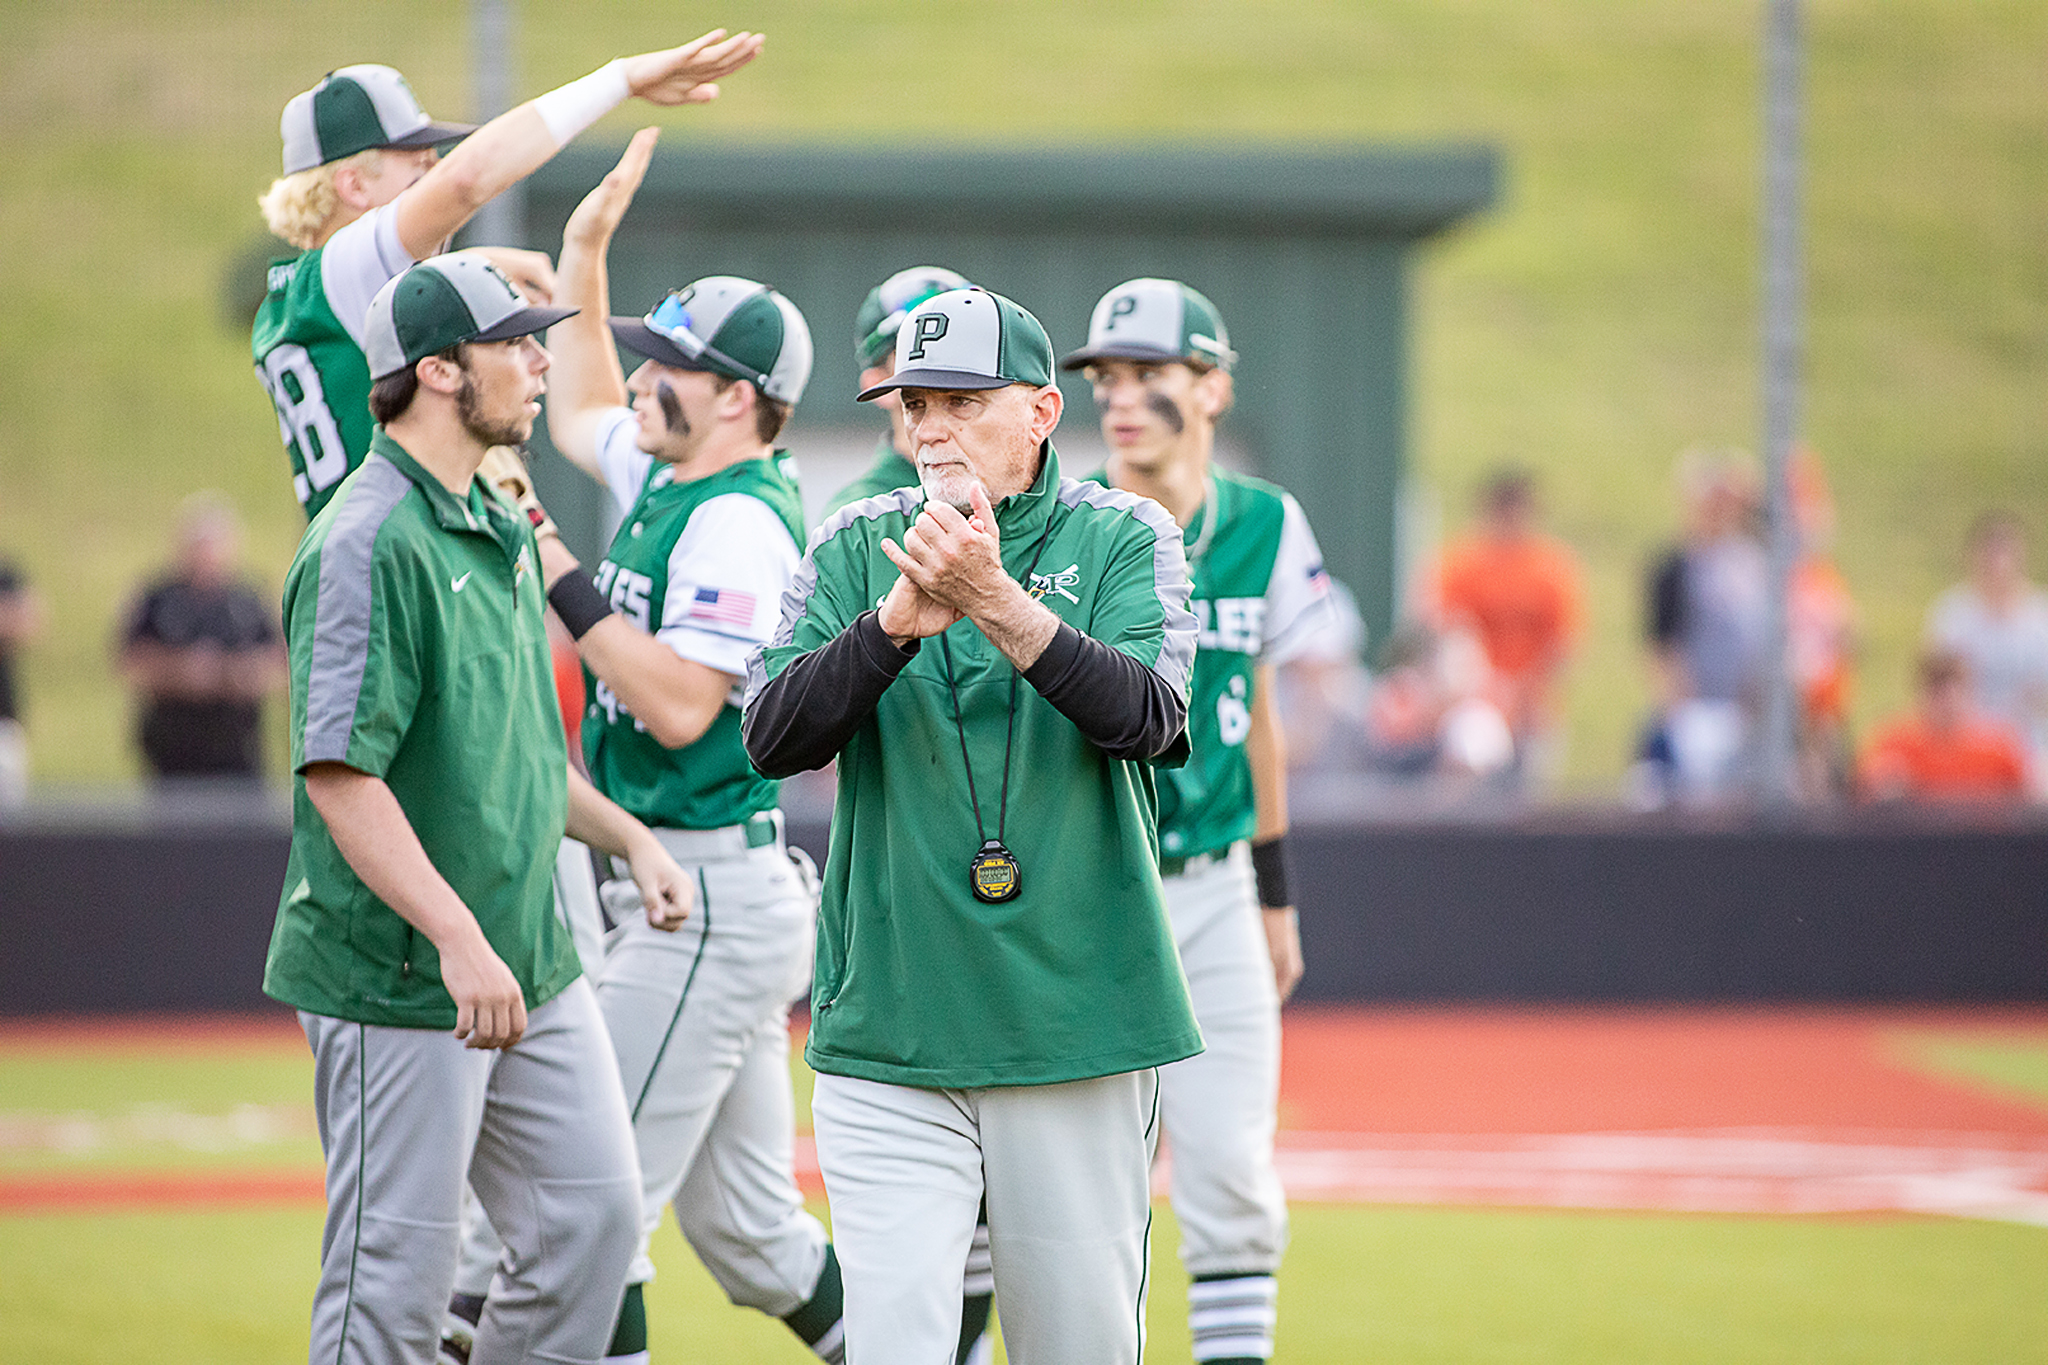 Prosper Baseball Coach Rick Carpenter Retires